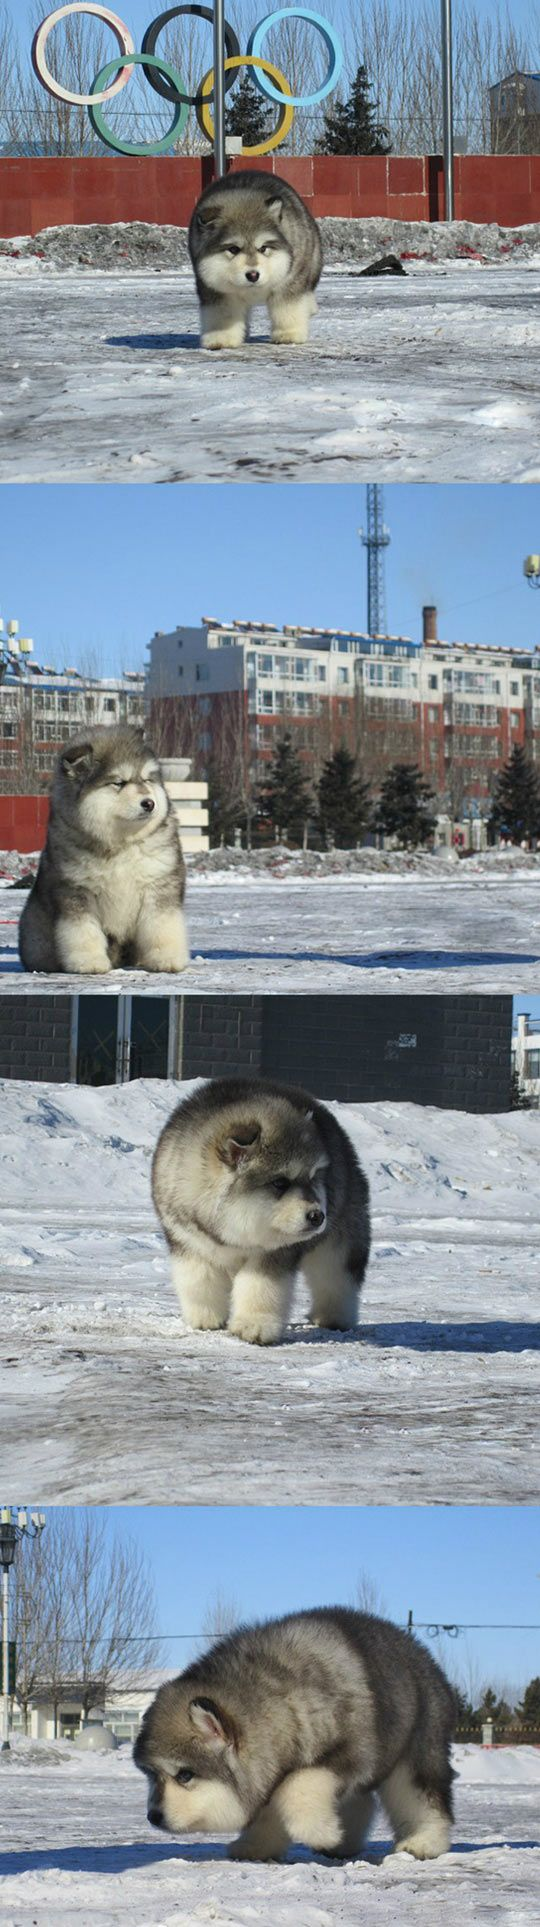 So This Dog Exists And He's Ridiculously Fluffy // funny pictures - funny photos - funny images - funny pics - funny quotes - #lol #humor #funnypictures